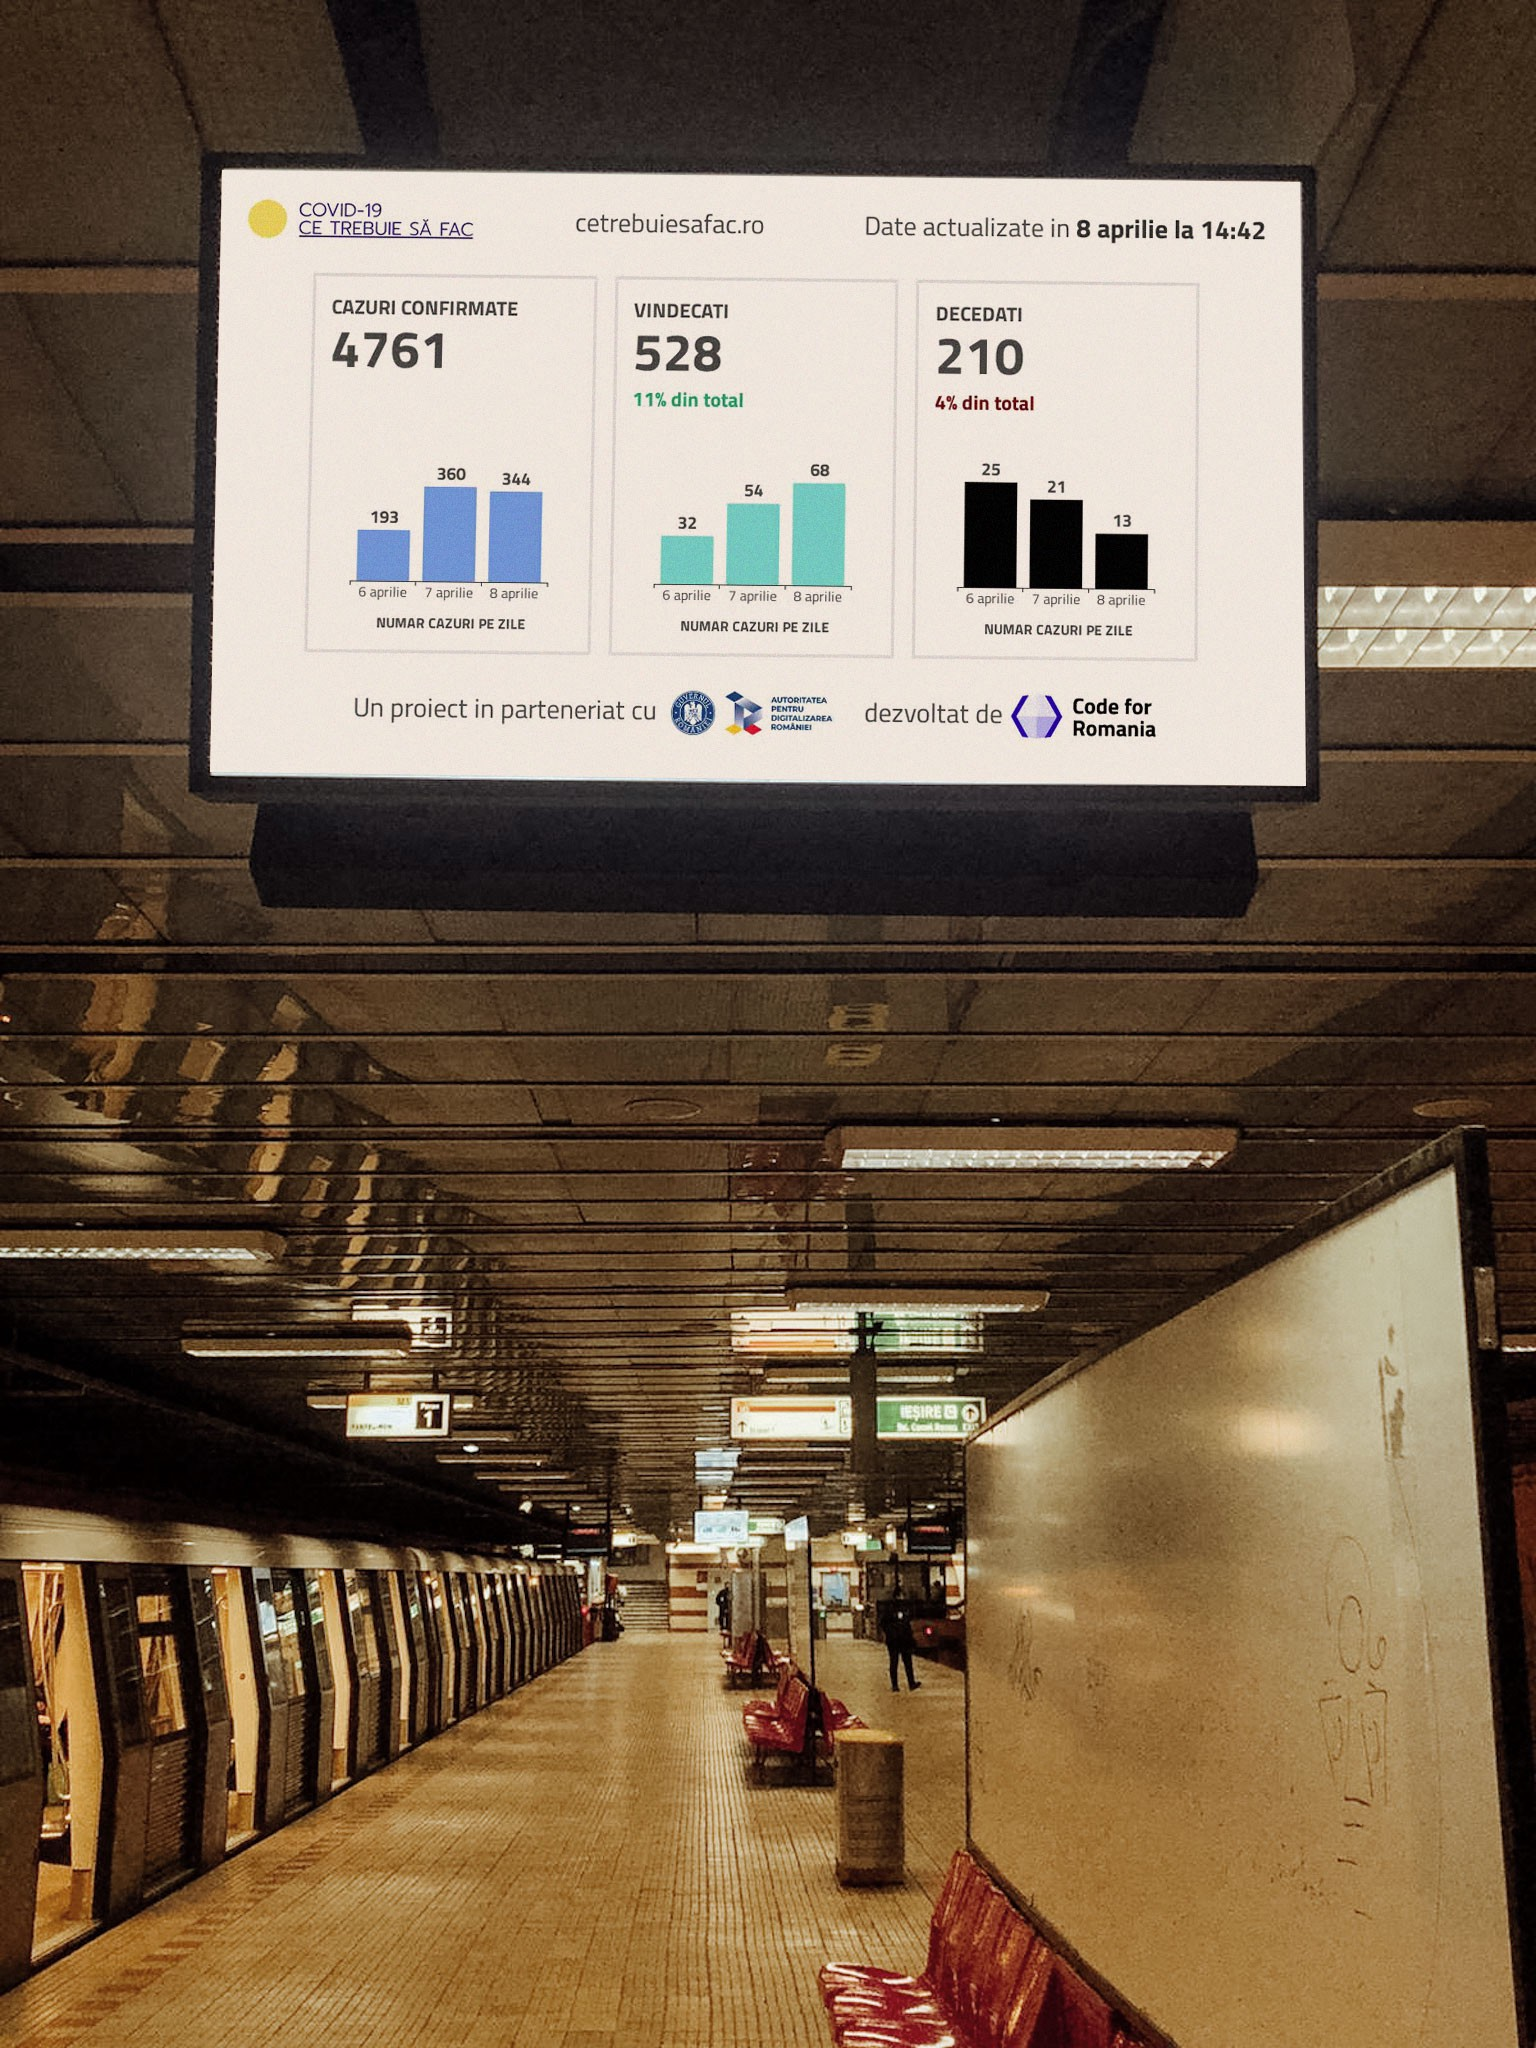 Subway screens showing automatic real time coronavirus updates